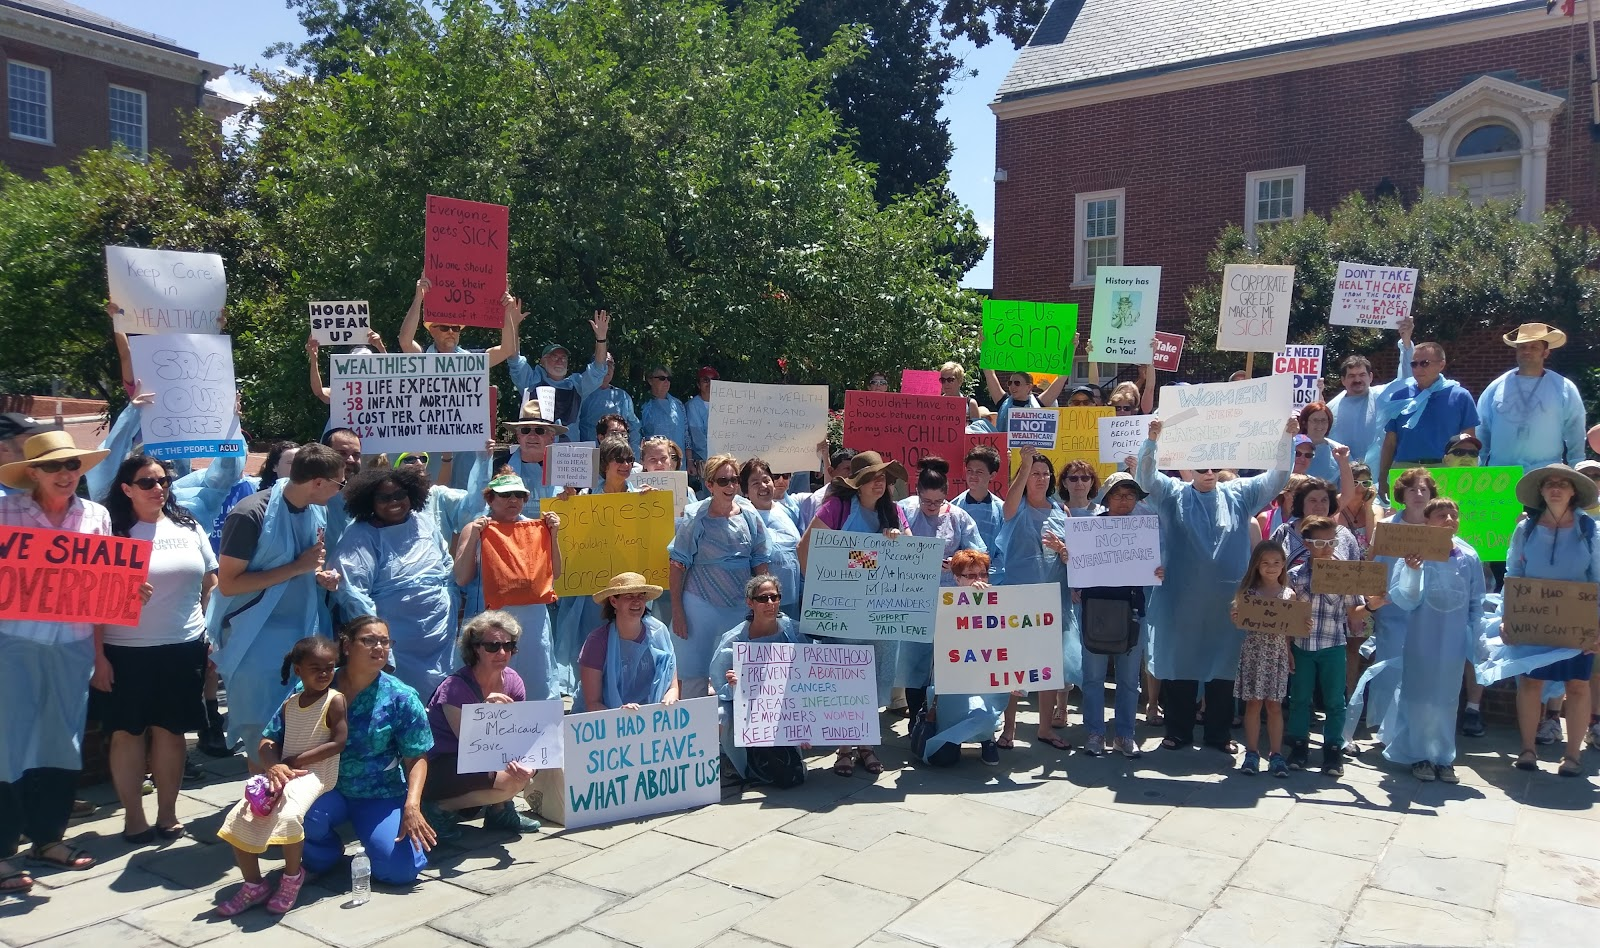 Rally for Healthcare and Medicaid in Annapolis